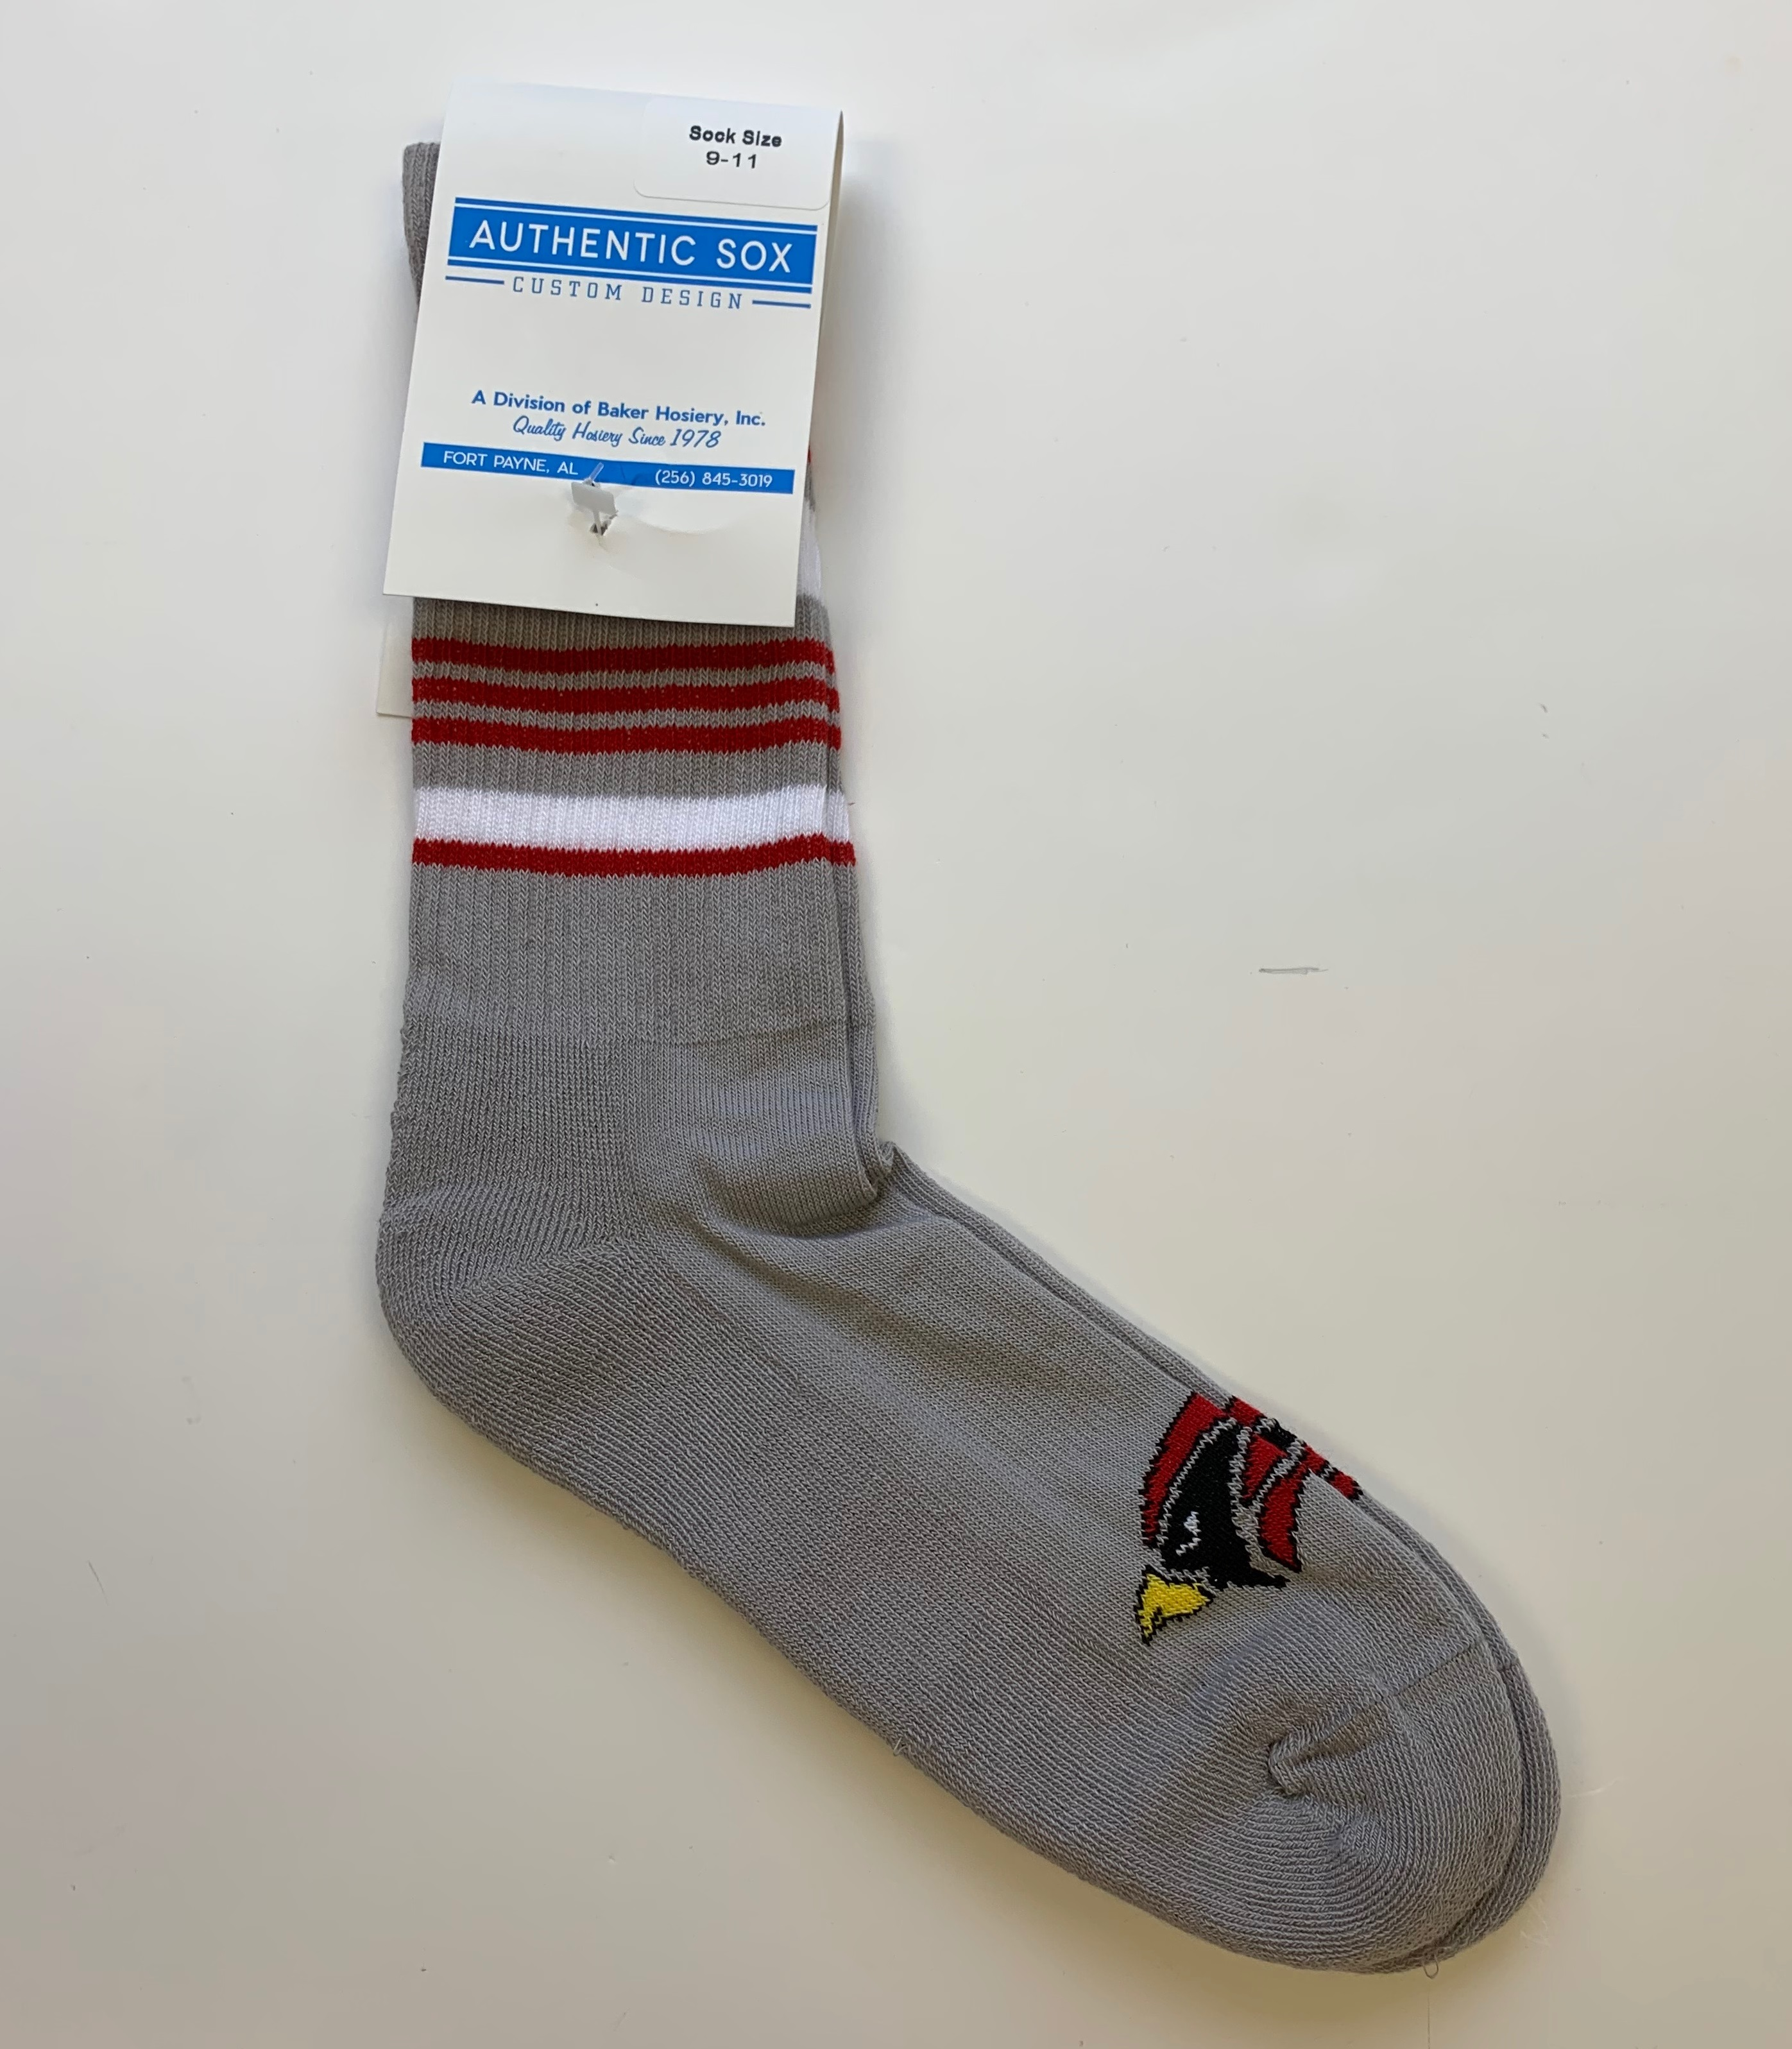 Image for the North Central College Socks by Mojo Brands product